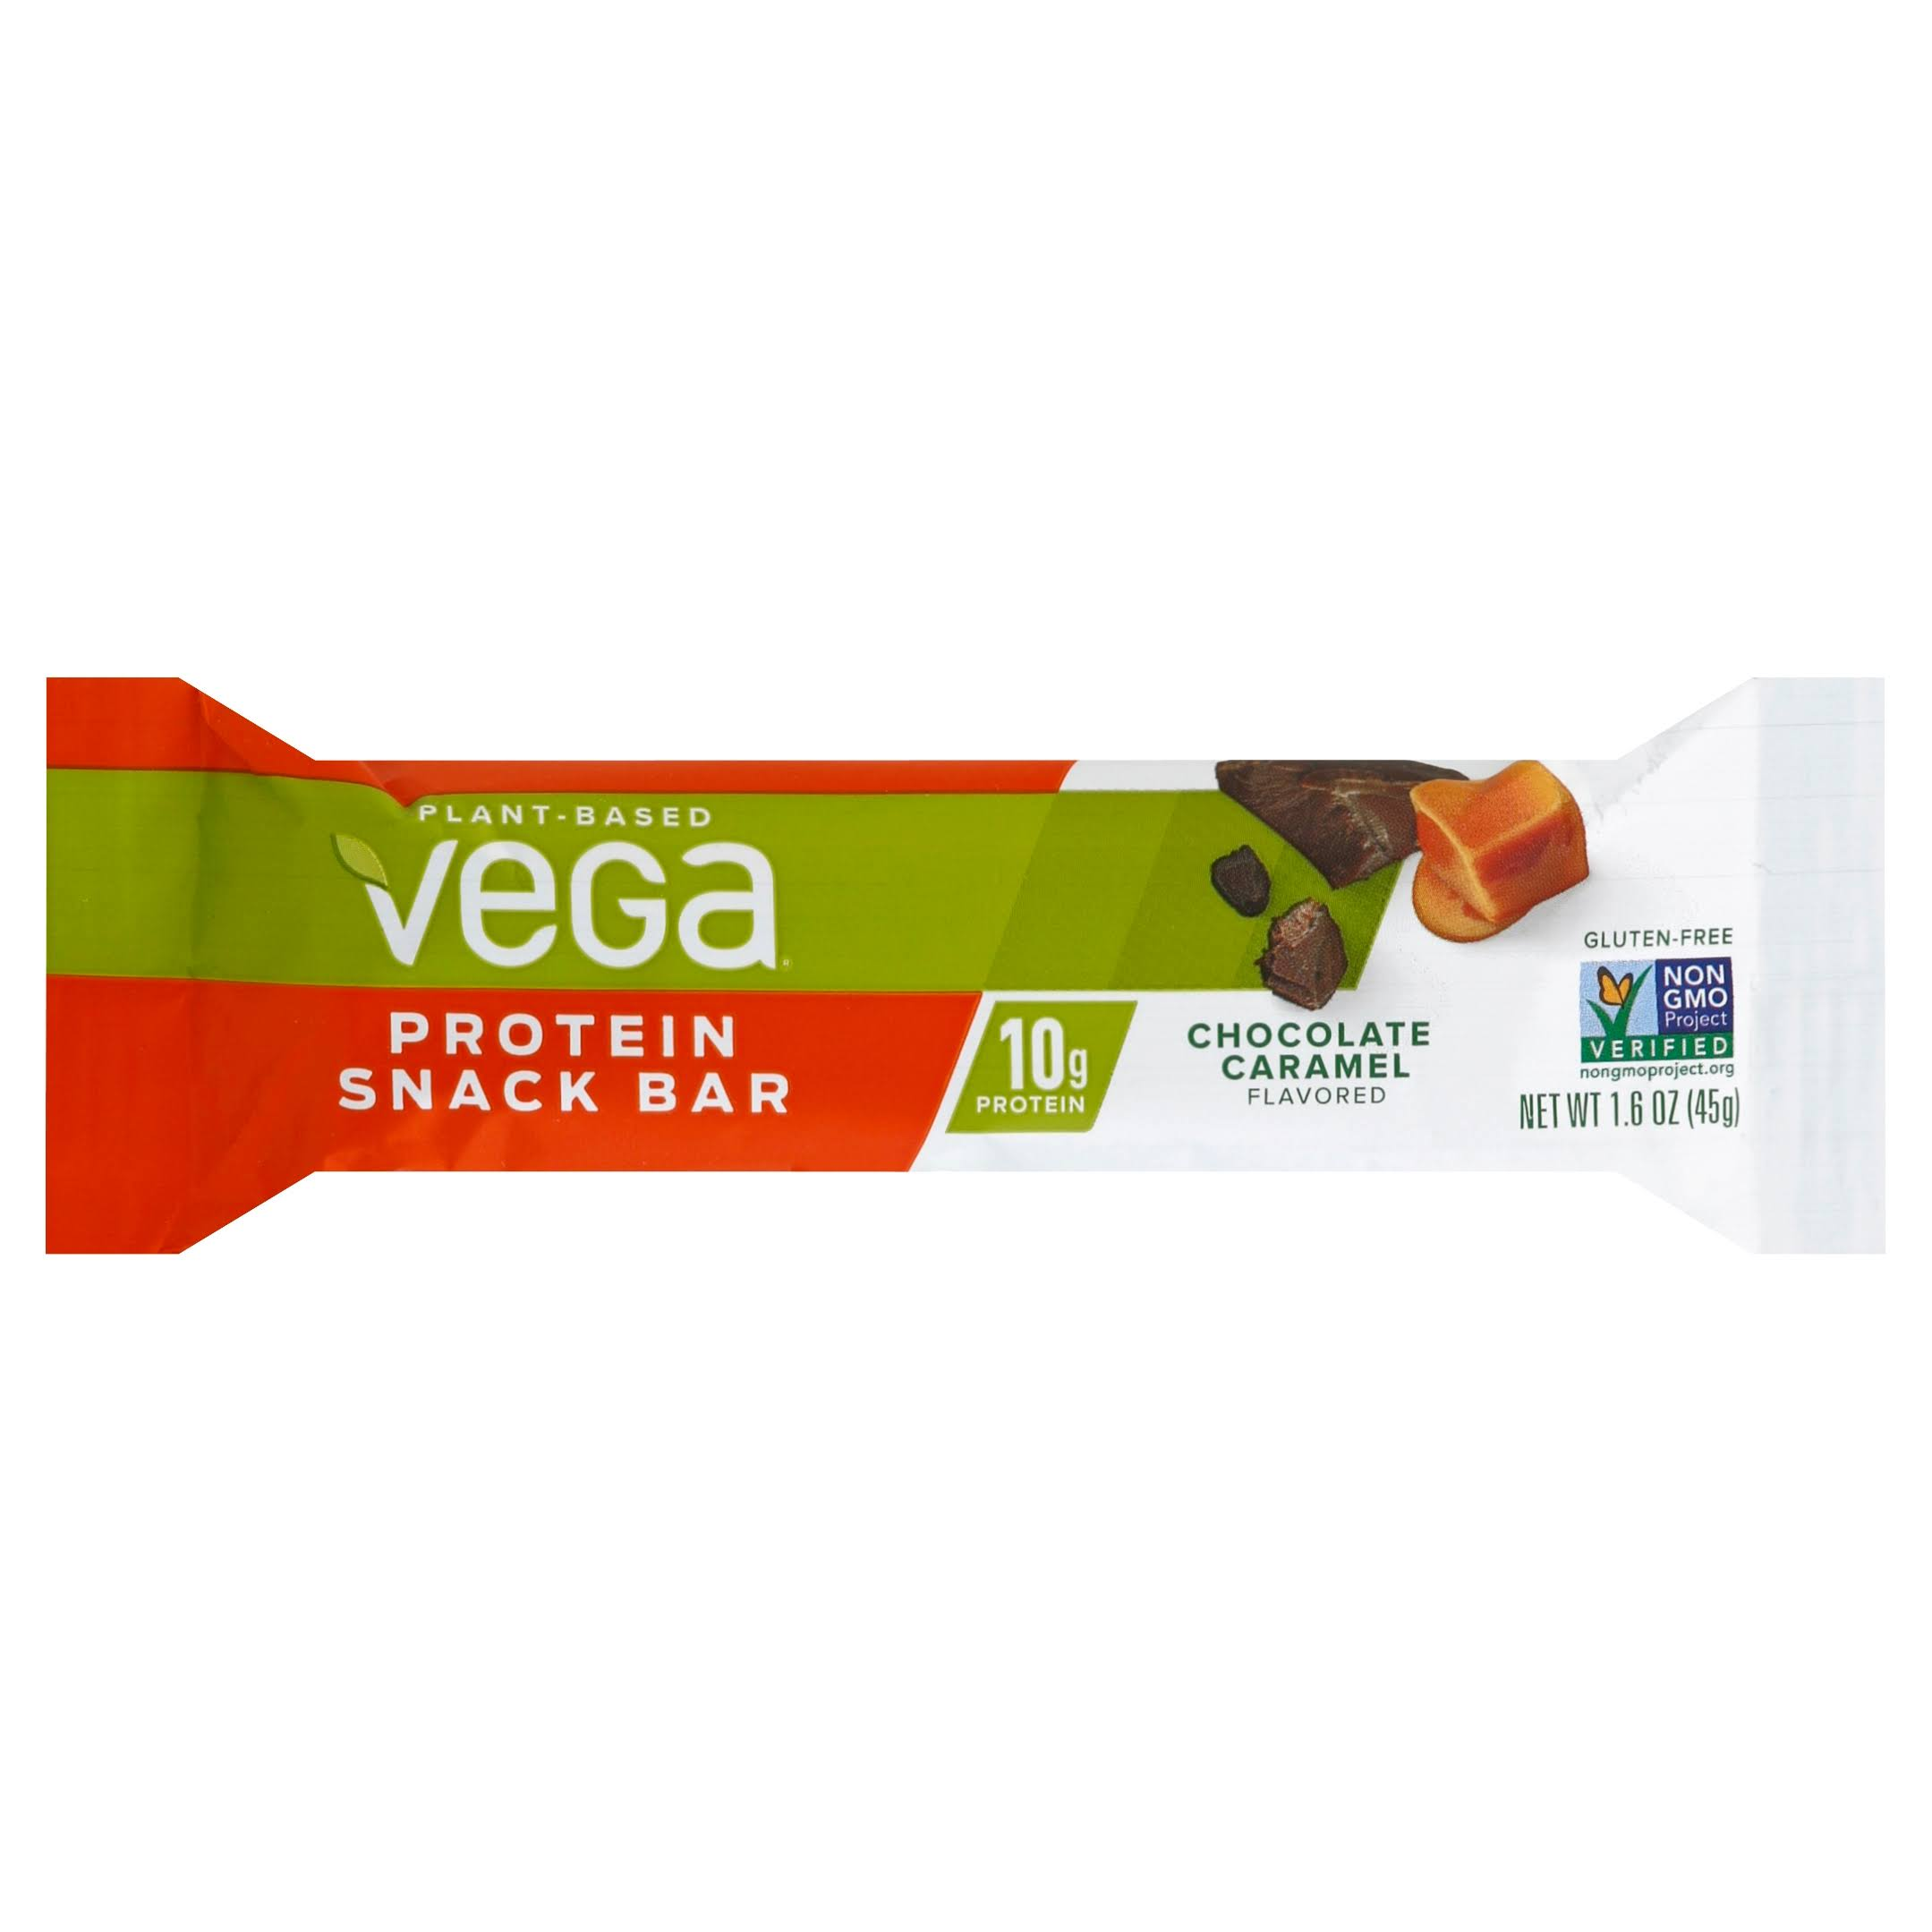 Vega Protein Snack Bar, Chocolate Caramel Flavored - 1.6 oz